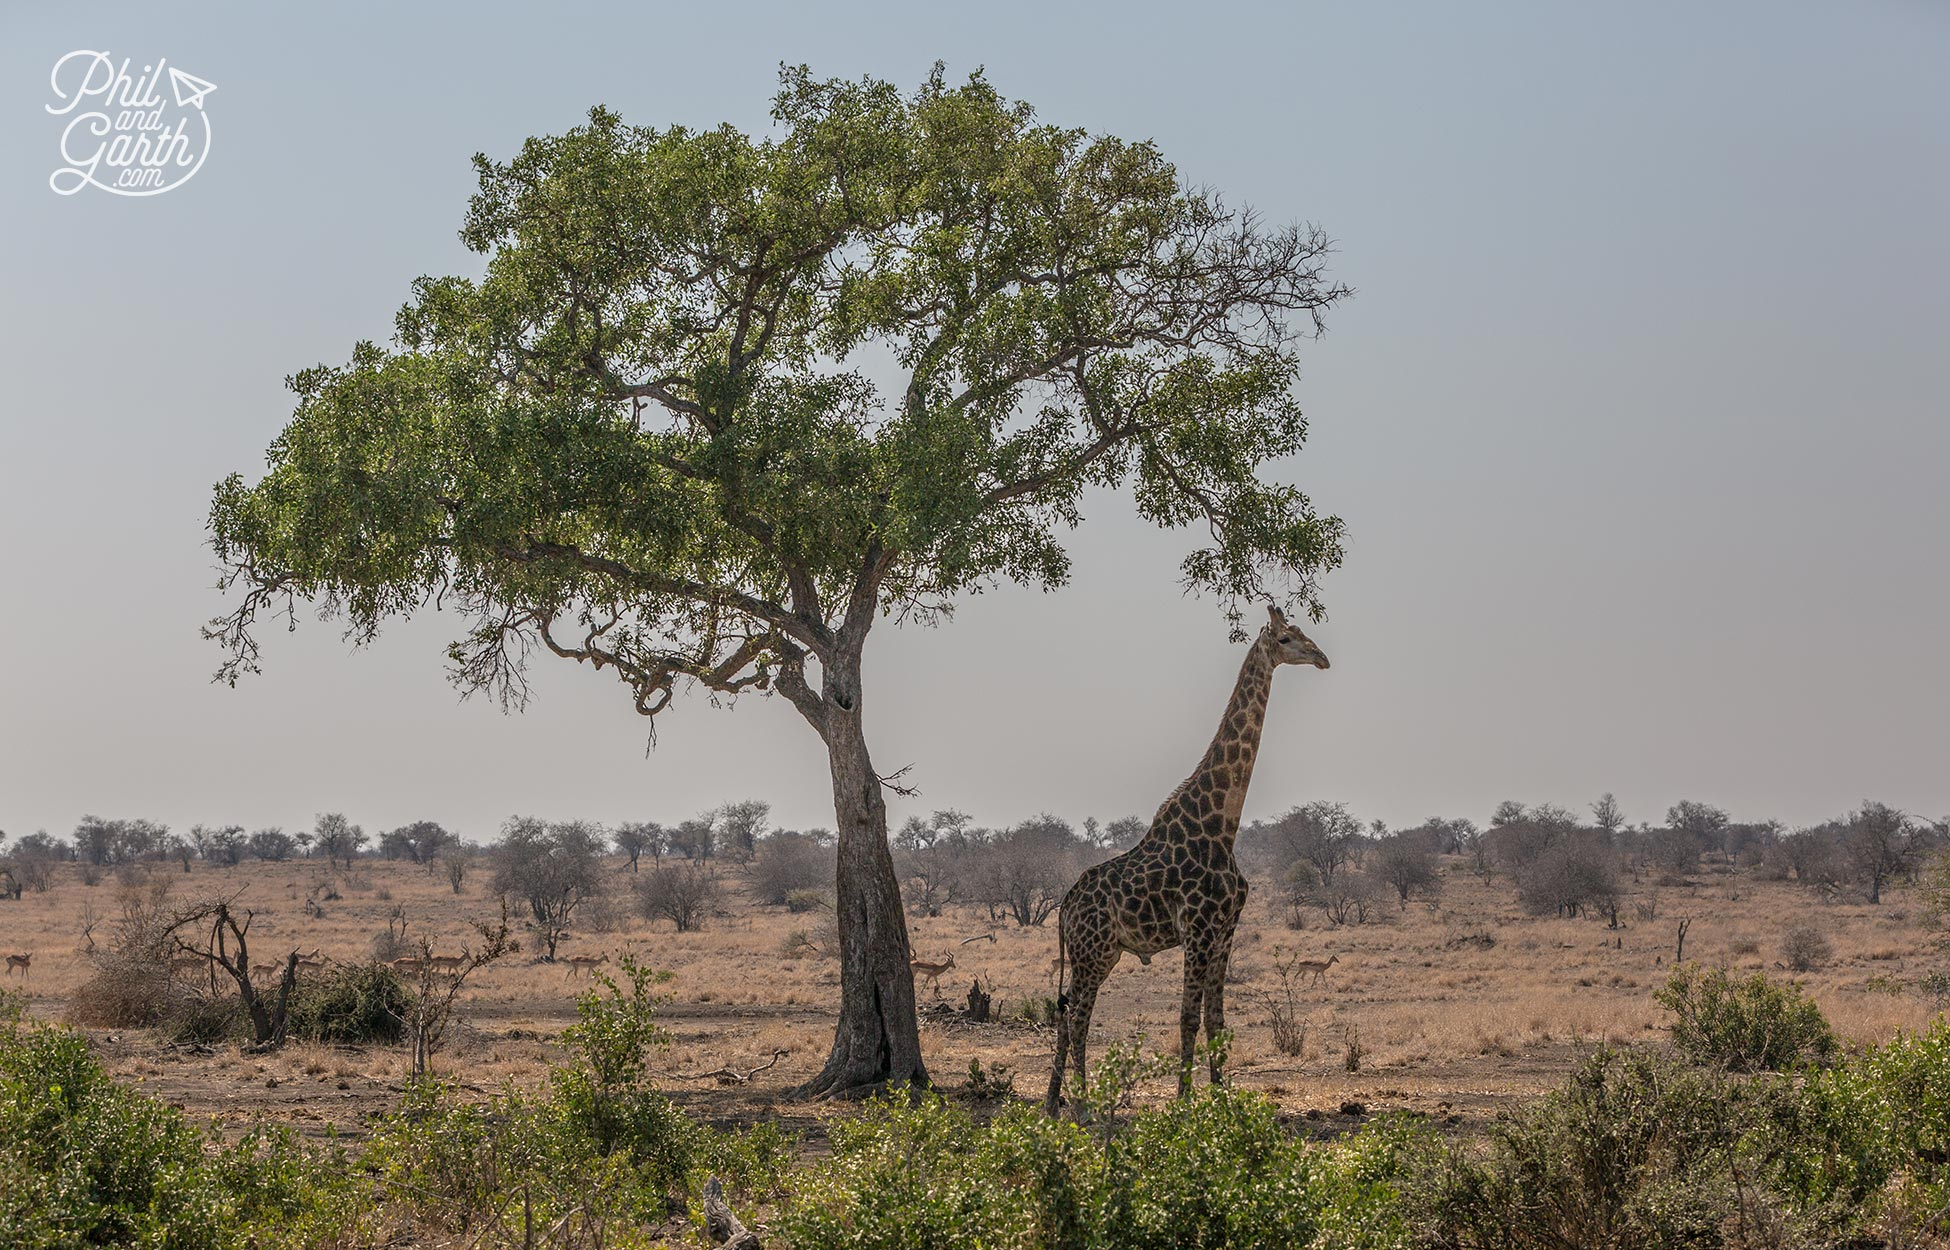 A giraffe takes shelter from the sun in the shade under a tree